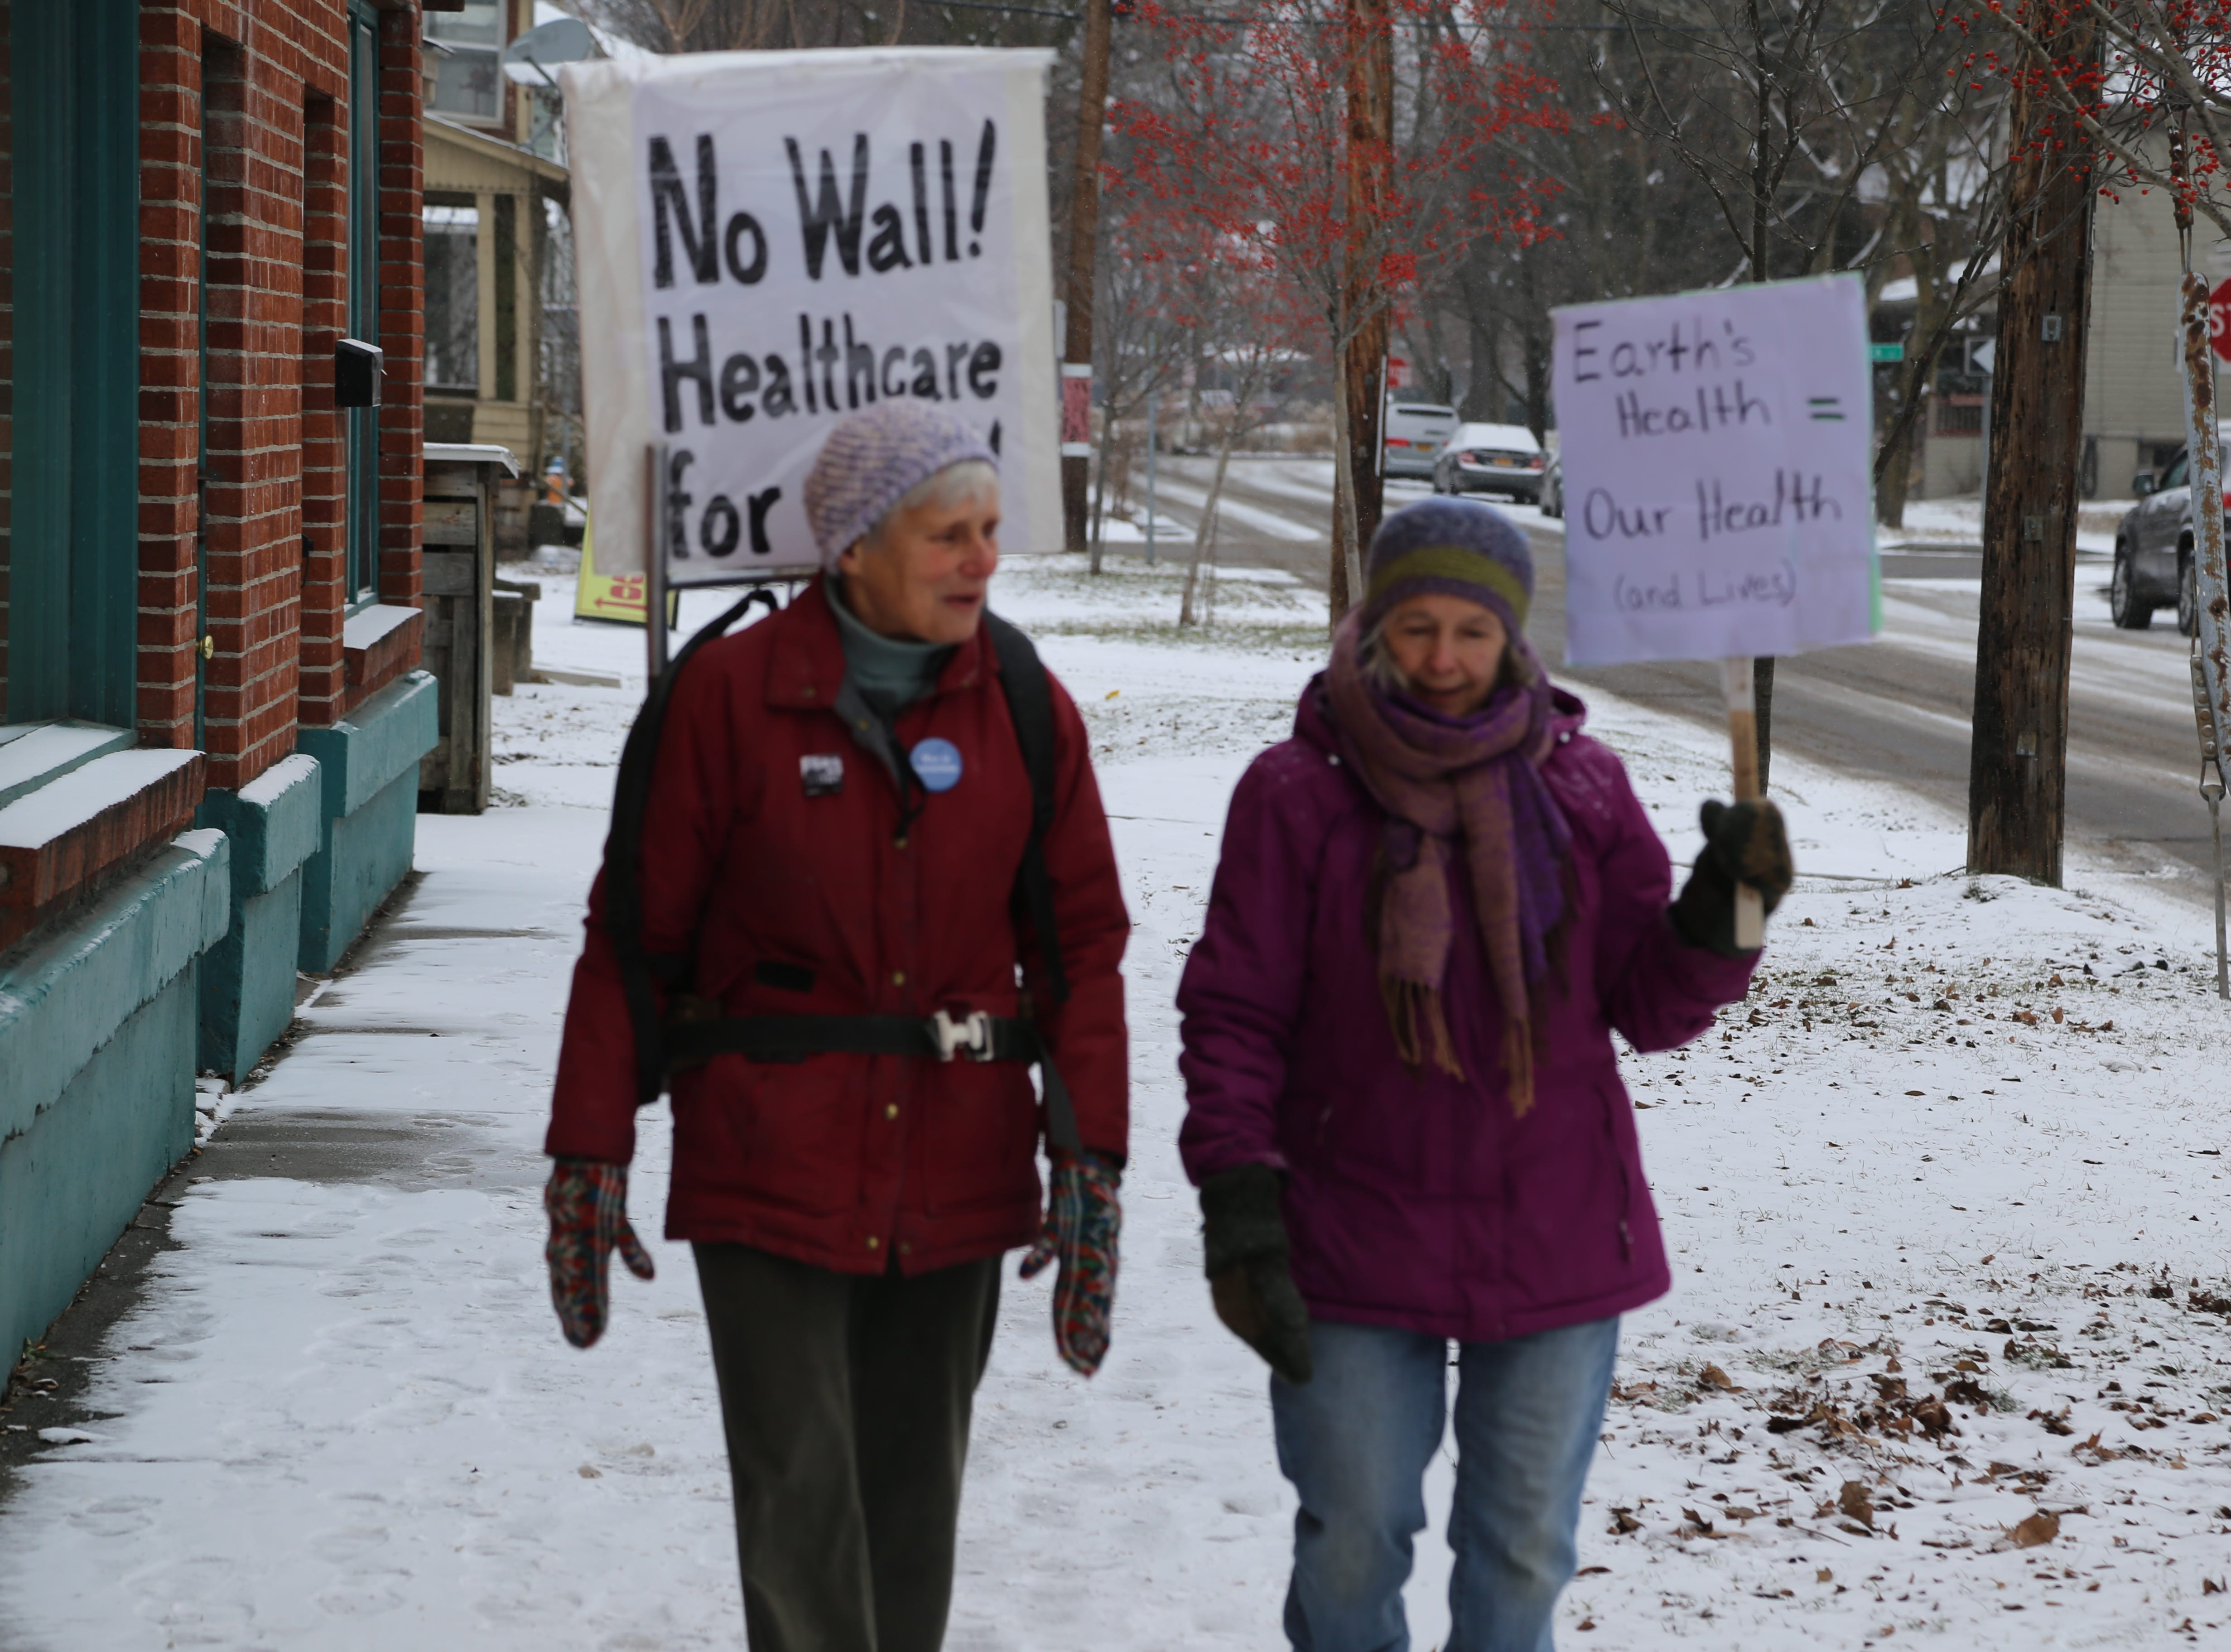 Two women who wanted to participate in Women March in Seneca Falls on Saturday decided to march in Ithaca instead because they did not want to drive through the snow.